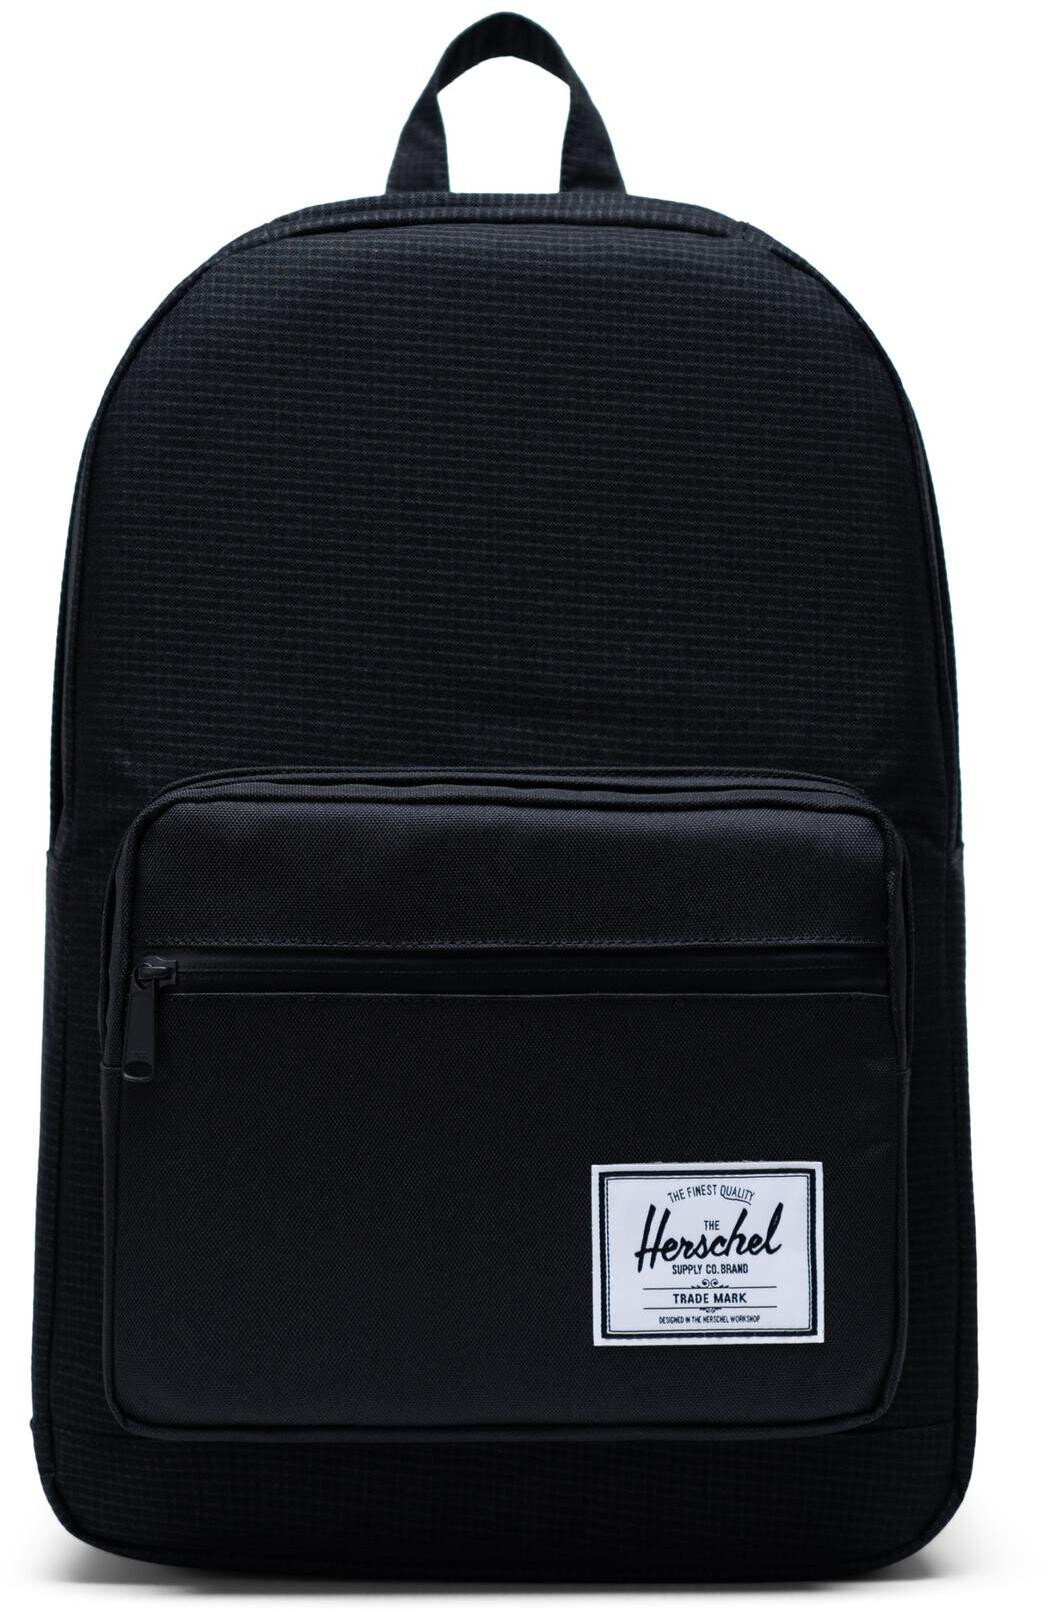 Herschel Pop Quiz Rygsæk, dark grid/black (2019) | Travel bags